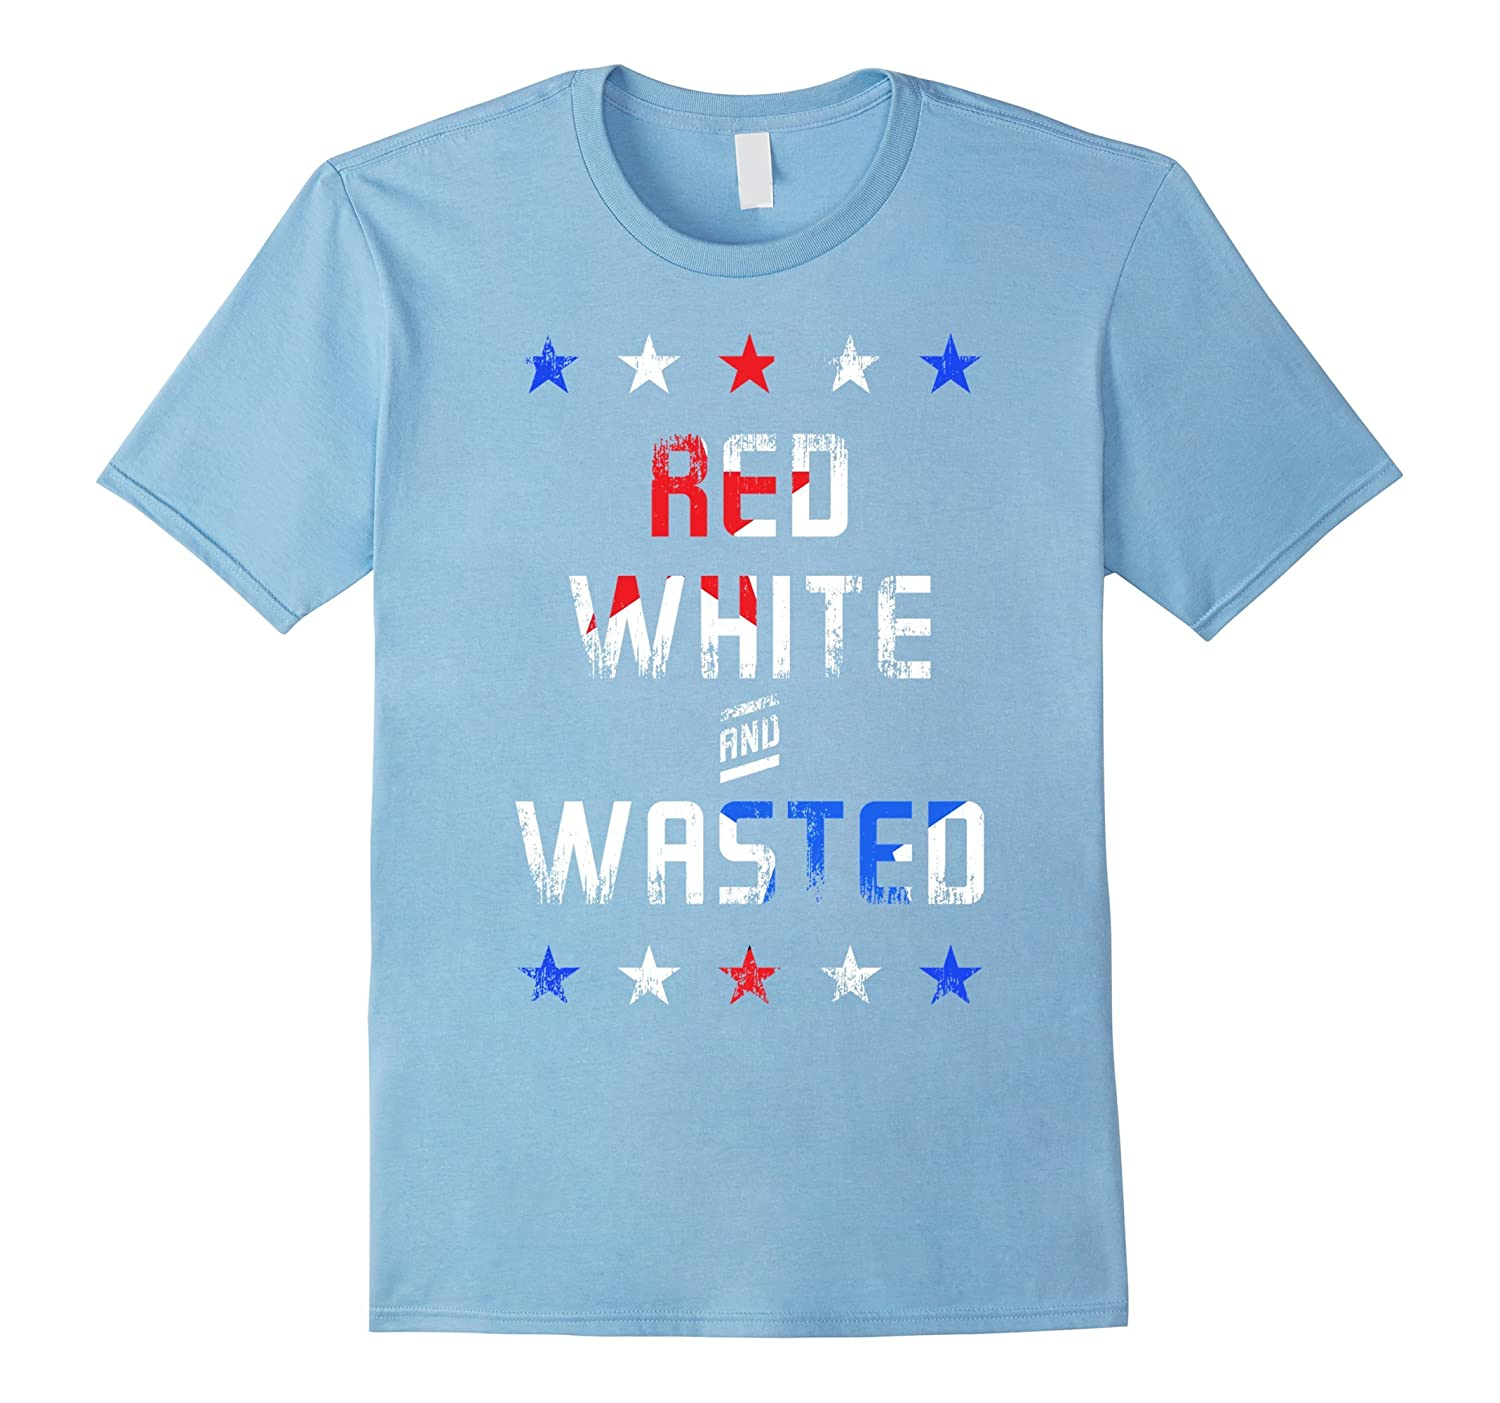 Red, White, and Wasted America beer shirt